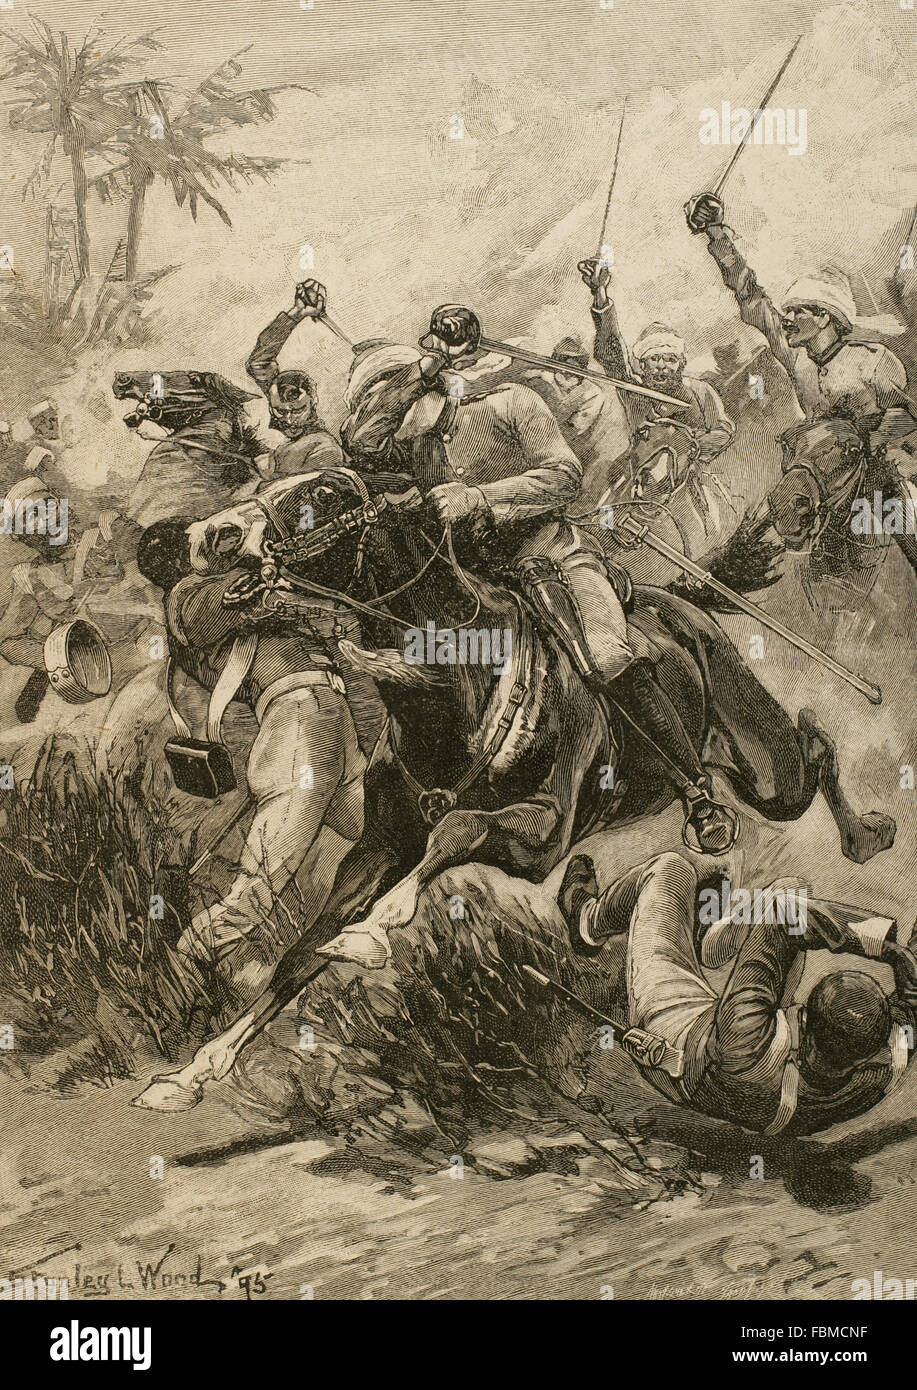 Sepoy Rebellion (1857). India revolution that erupted as a reaction against